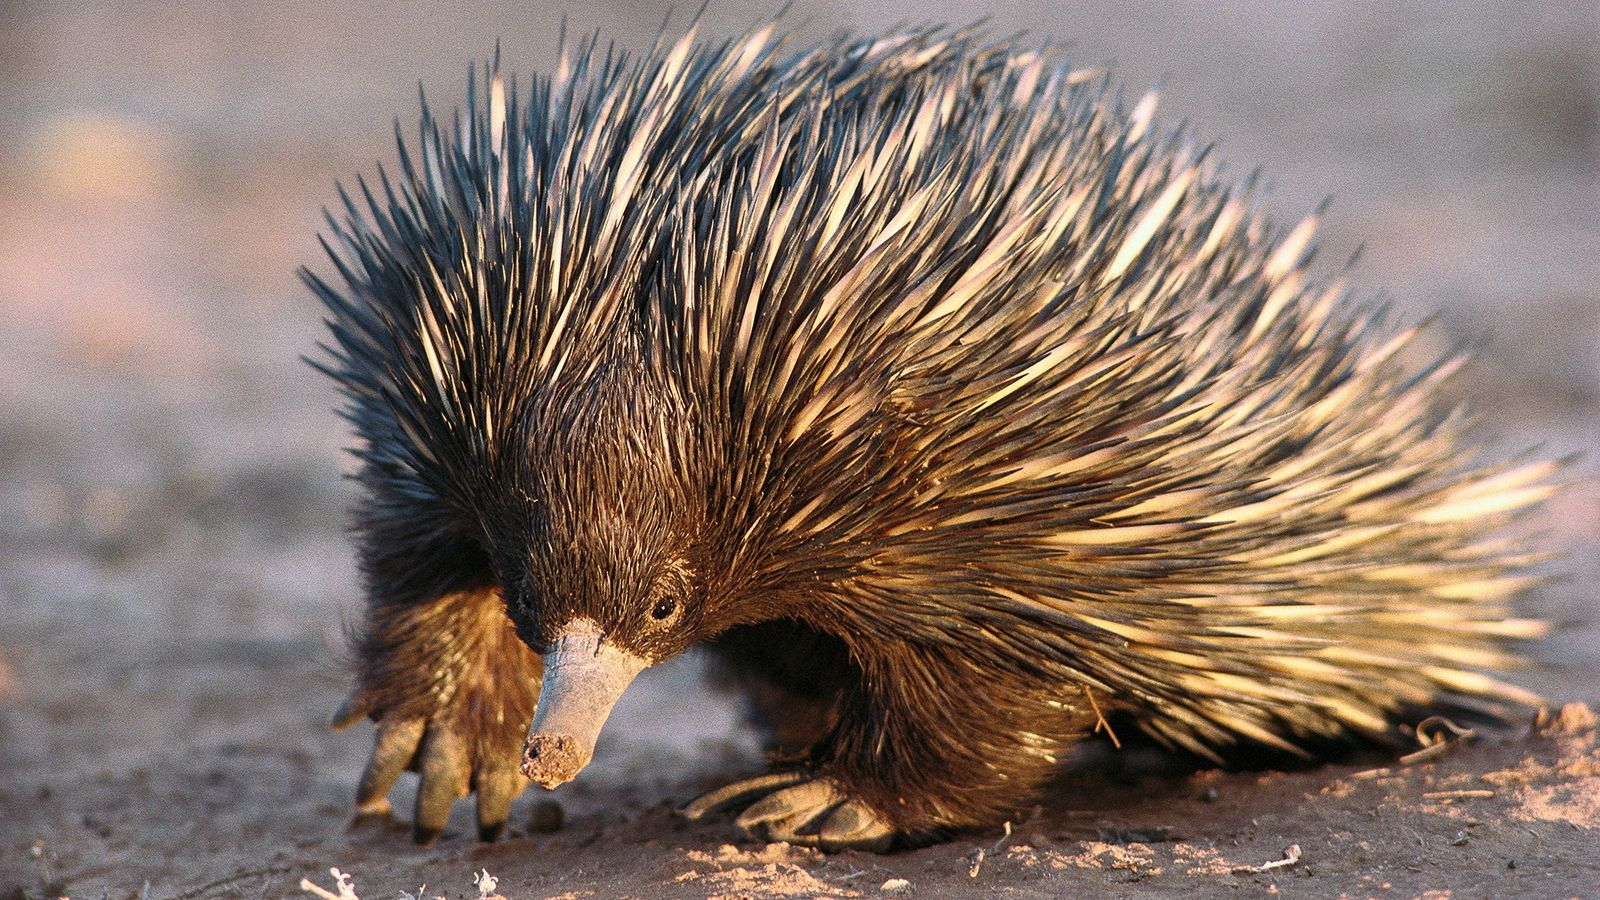 Short-beaked echidnas, found in Australia and New Guinea, are very difficult to breed in captivity. As ...